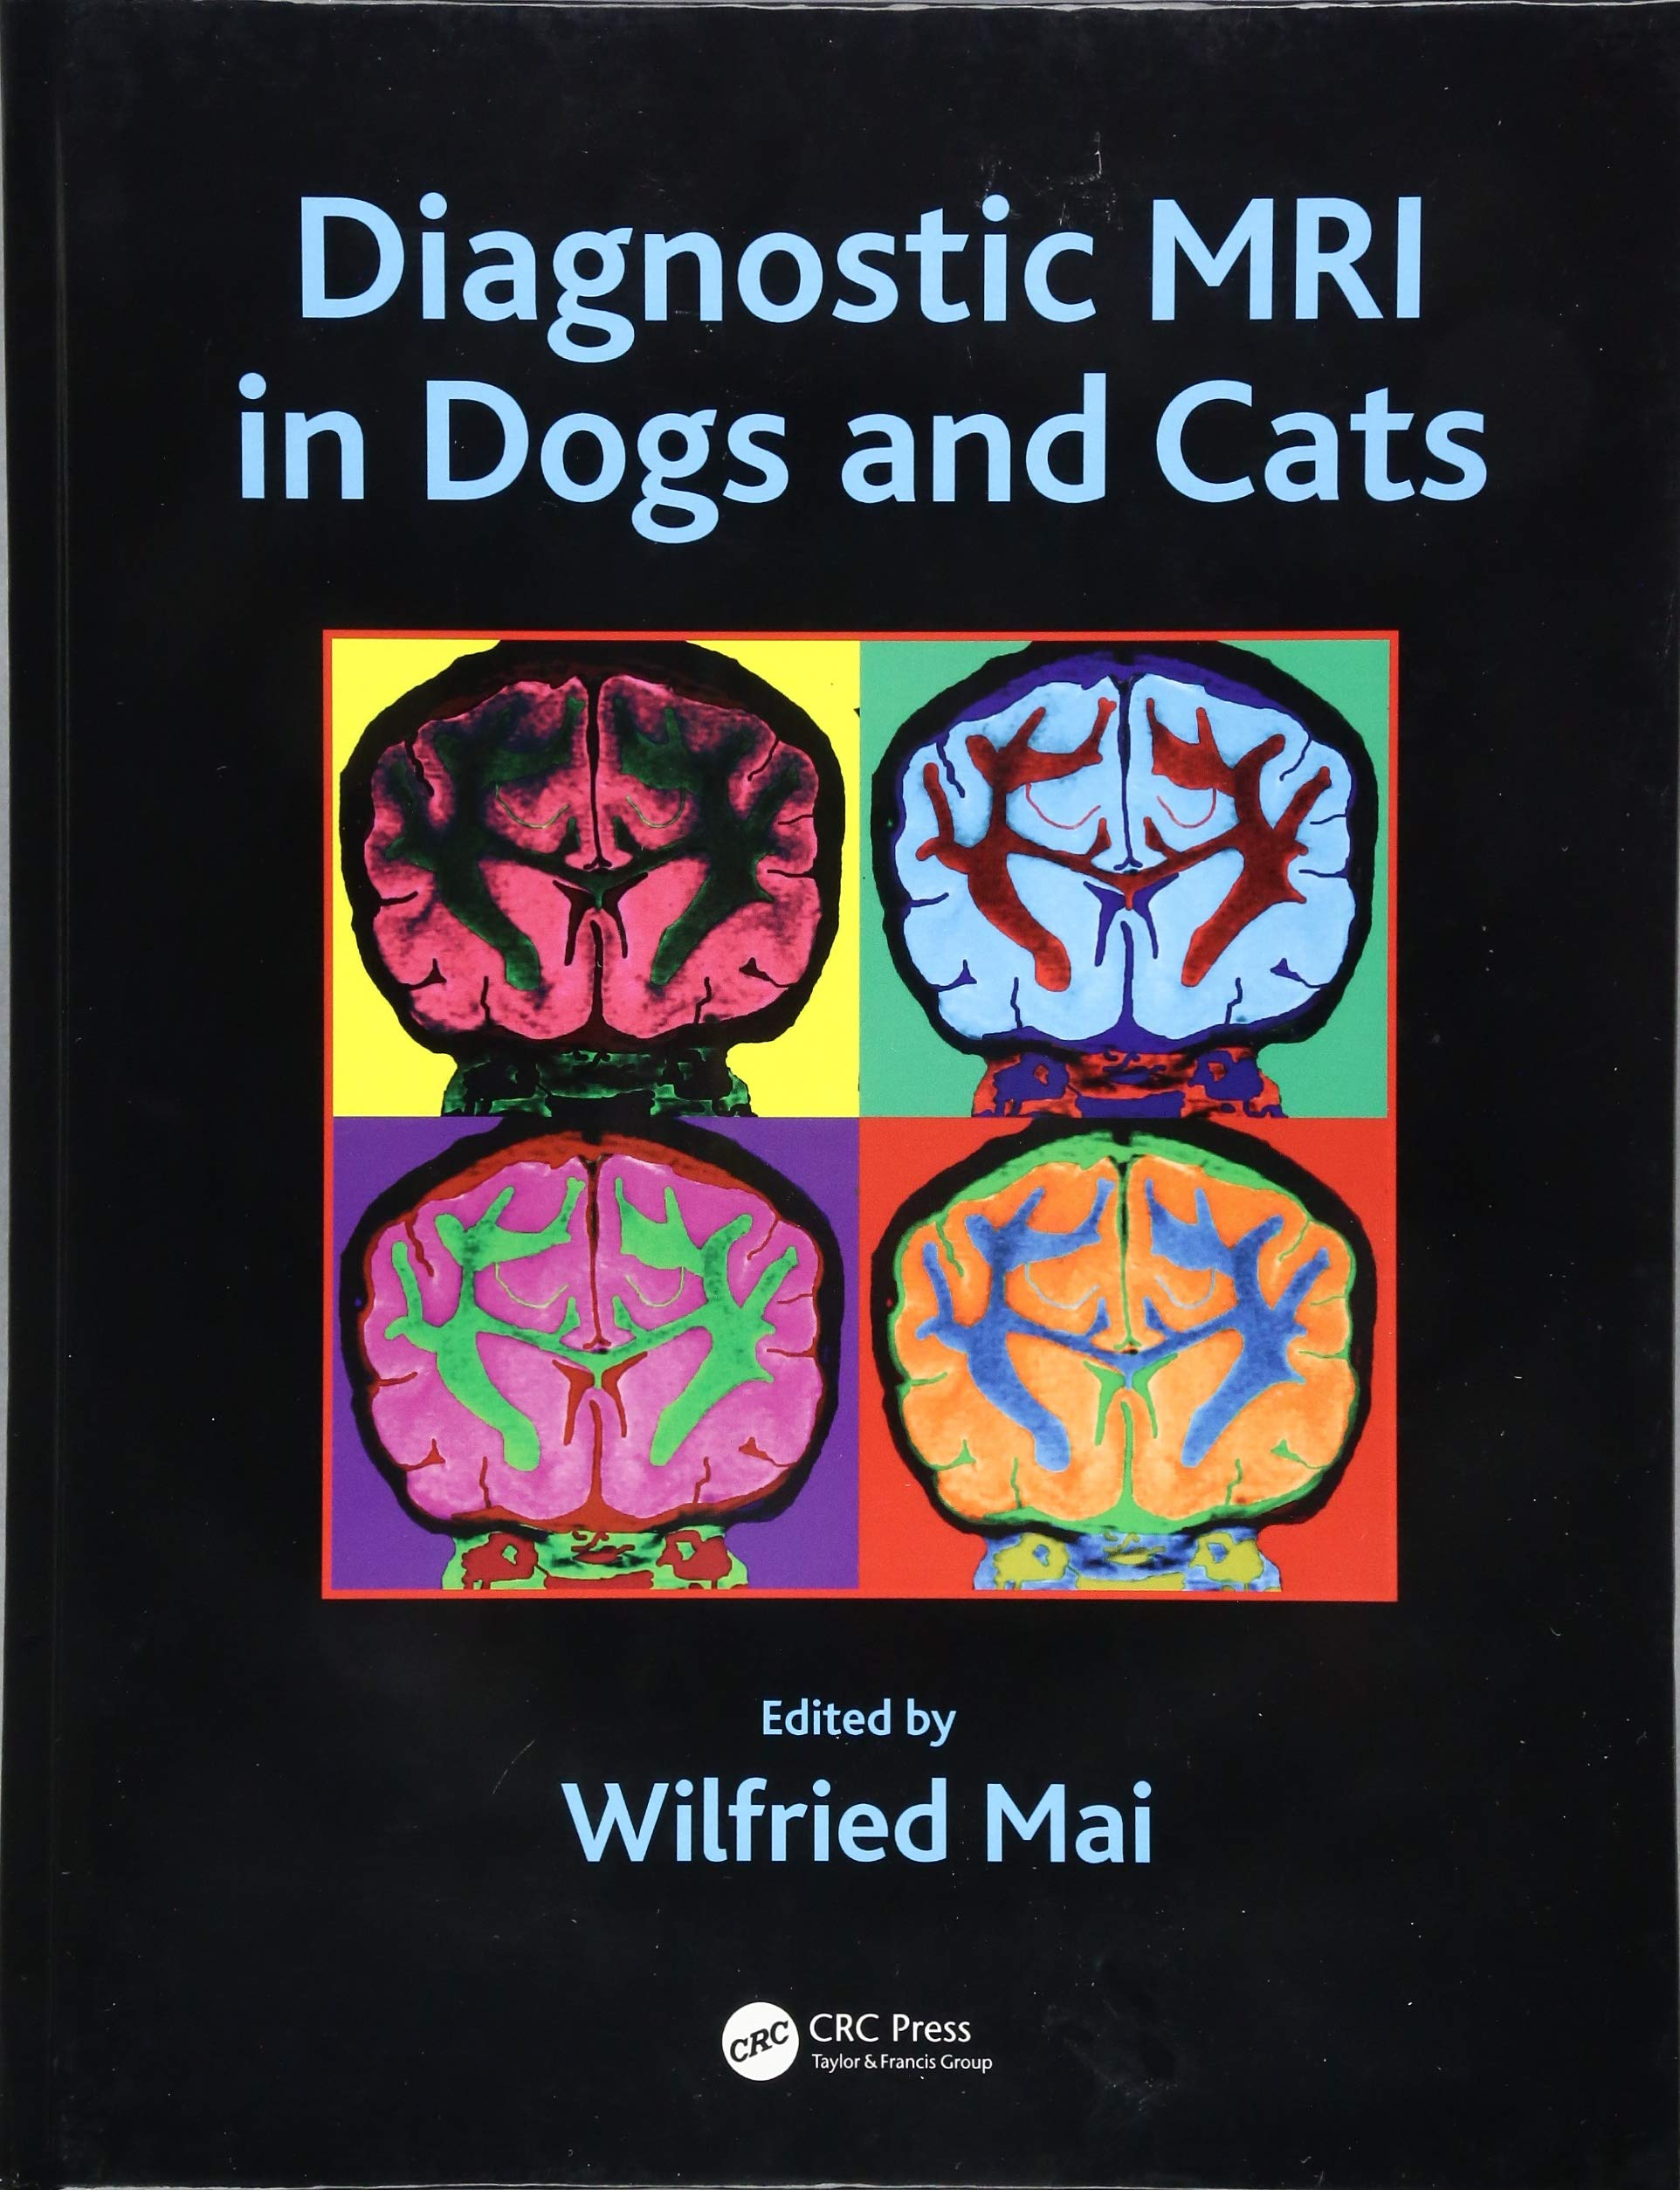 Diagnostic MRI in Dogs and Cats by CRC Press